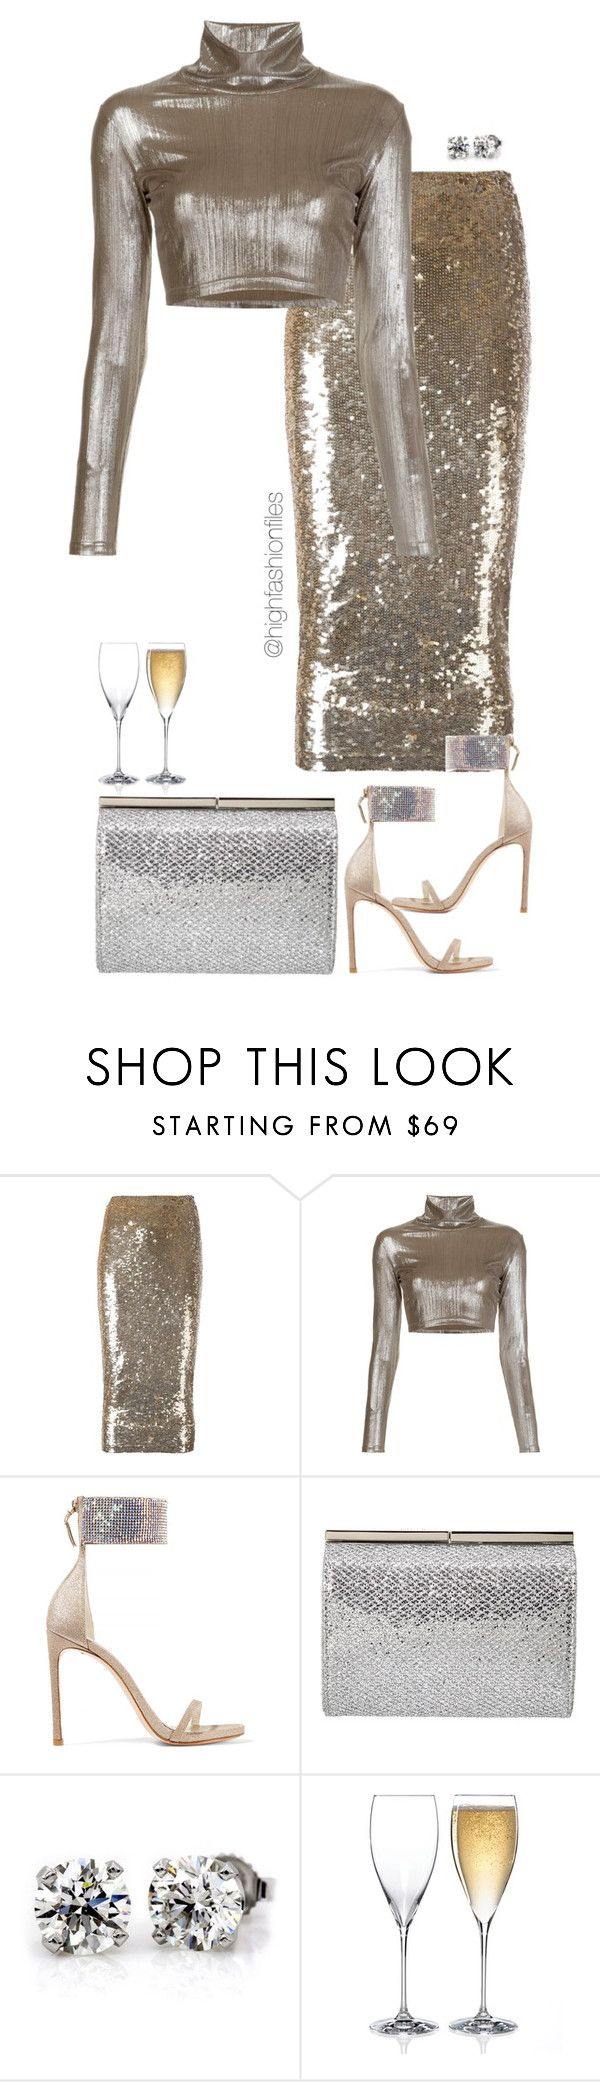 """""""Untitled #2662"""" by highfashionfiles ❤ liked on Polyvore featuring P.A.R.O.S.H., Alexander Lewis, Stuart Weitzman, Jimmy Choo and Riedel"""